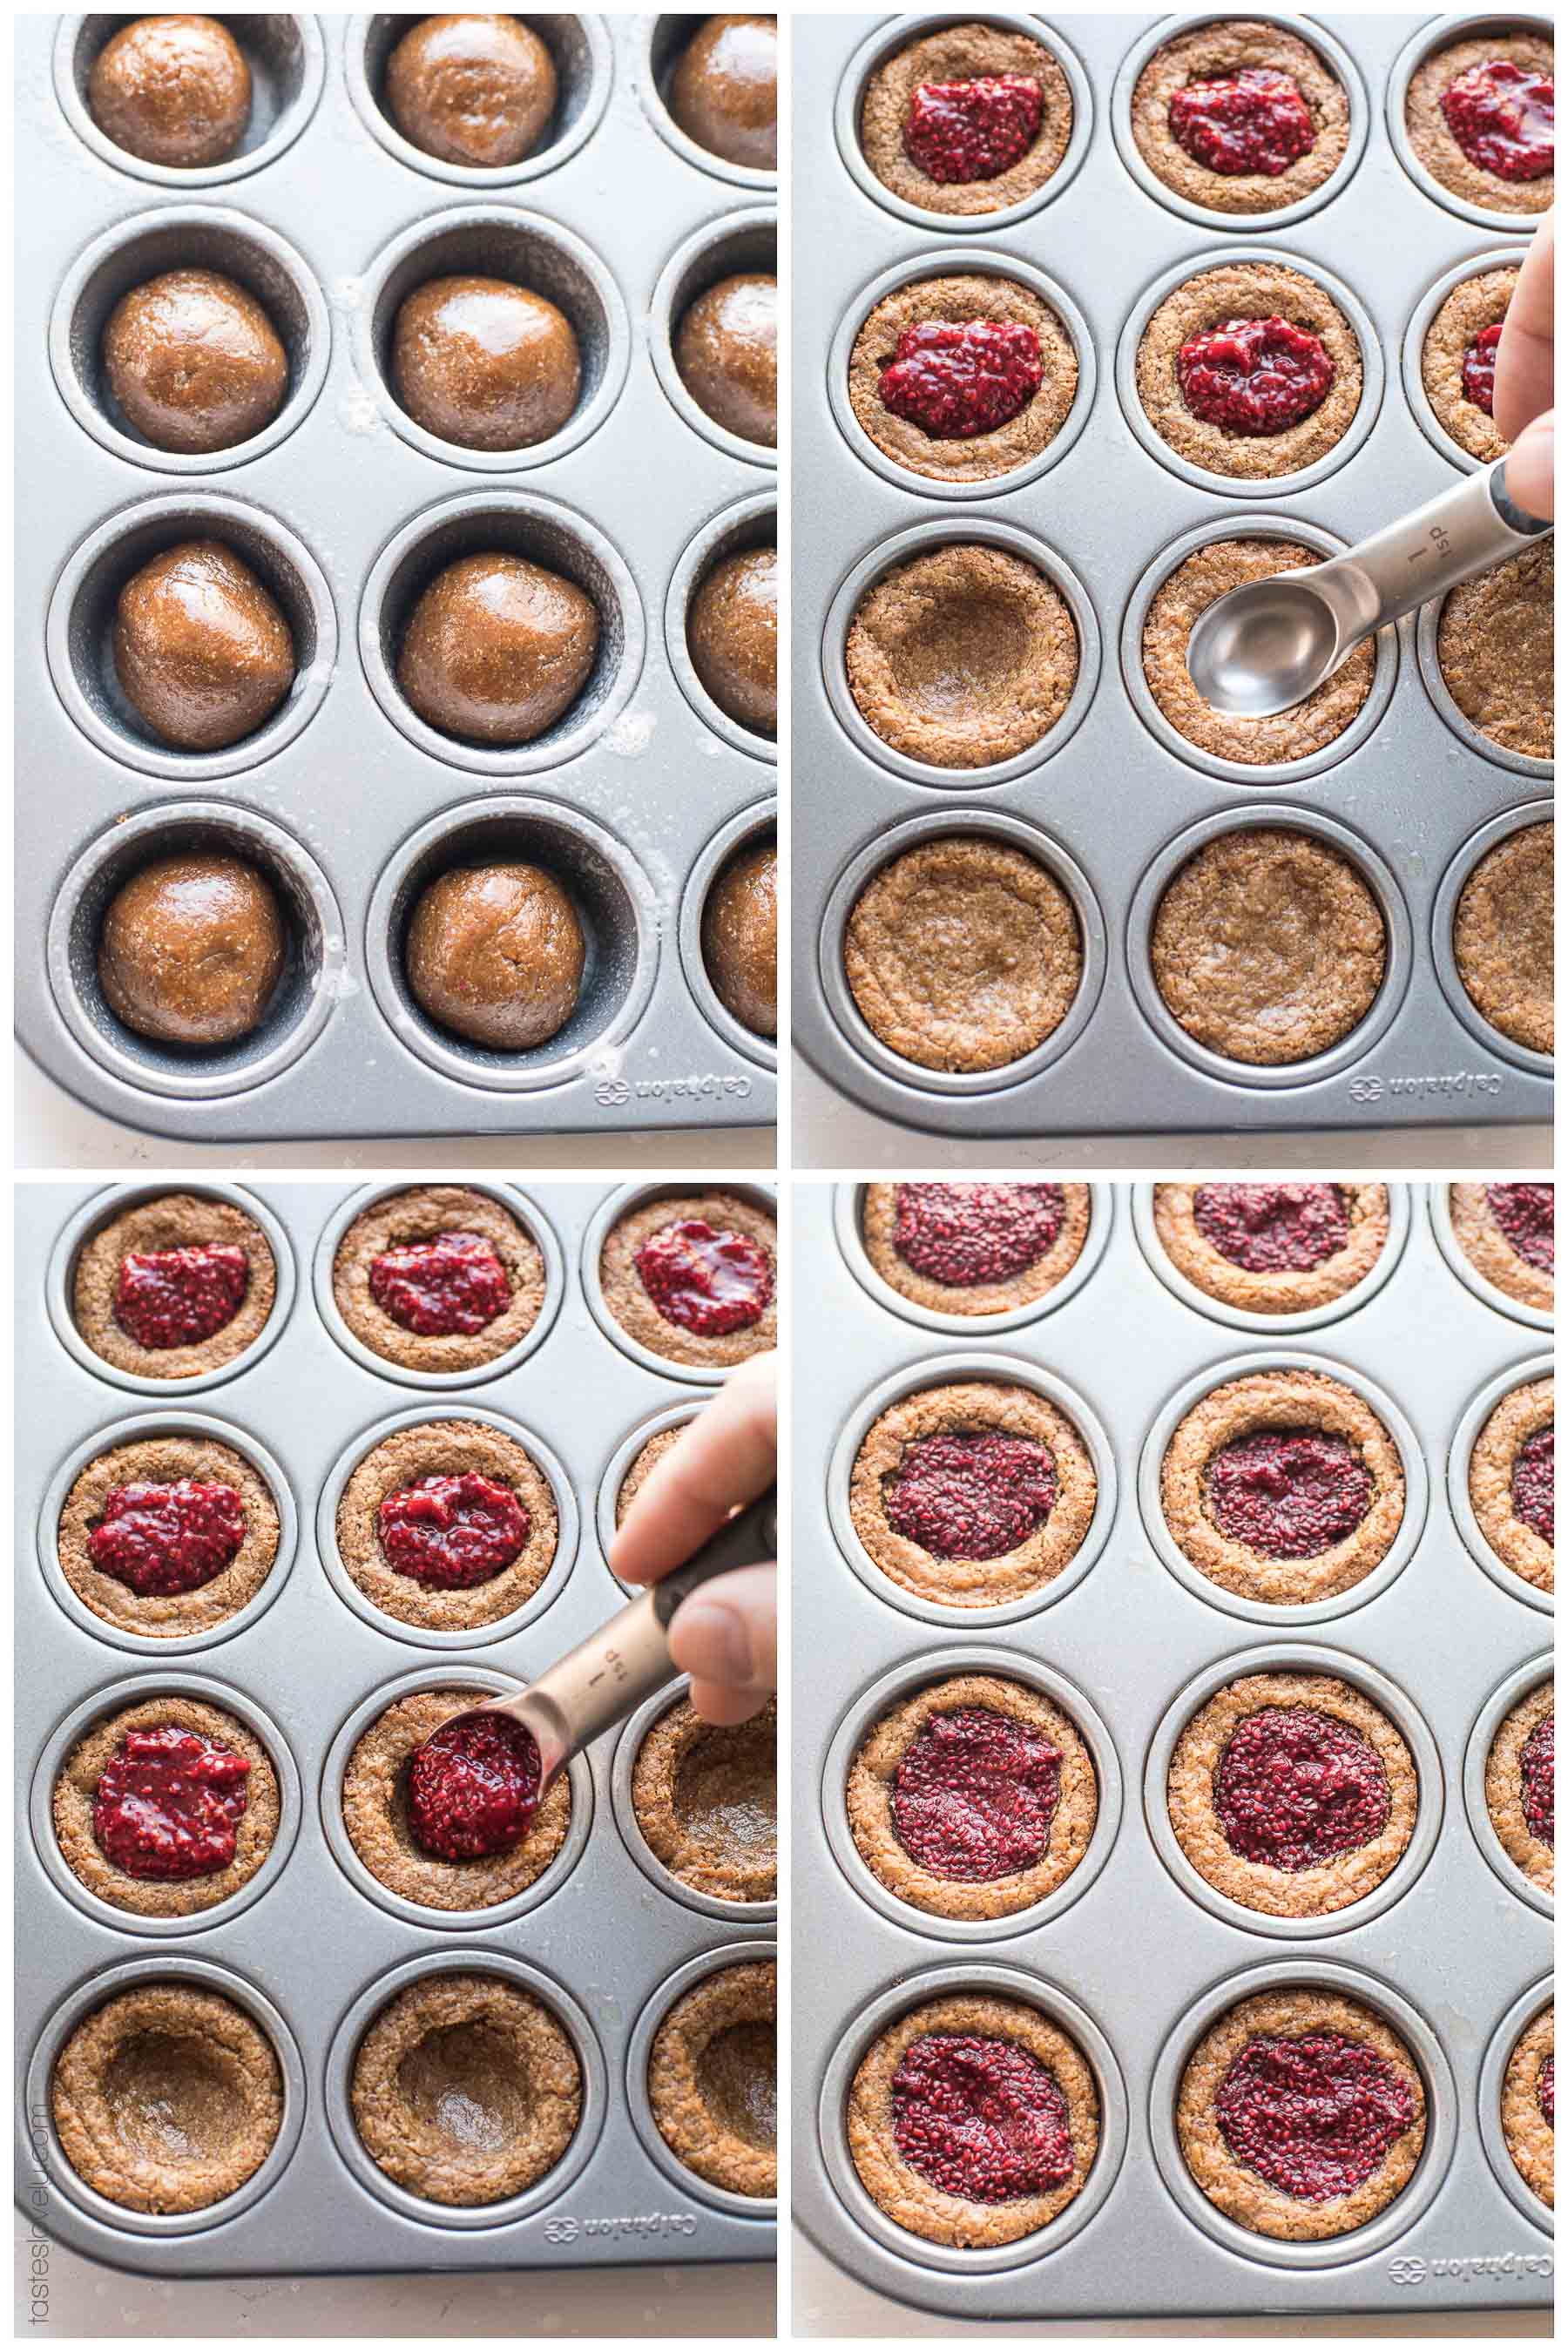 Paleo Almond Butter and Chia Jam Cookie Cups - a gluten free, dairy free and refined sugar free cookie recipe